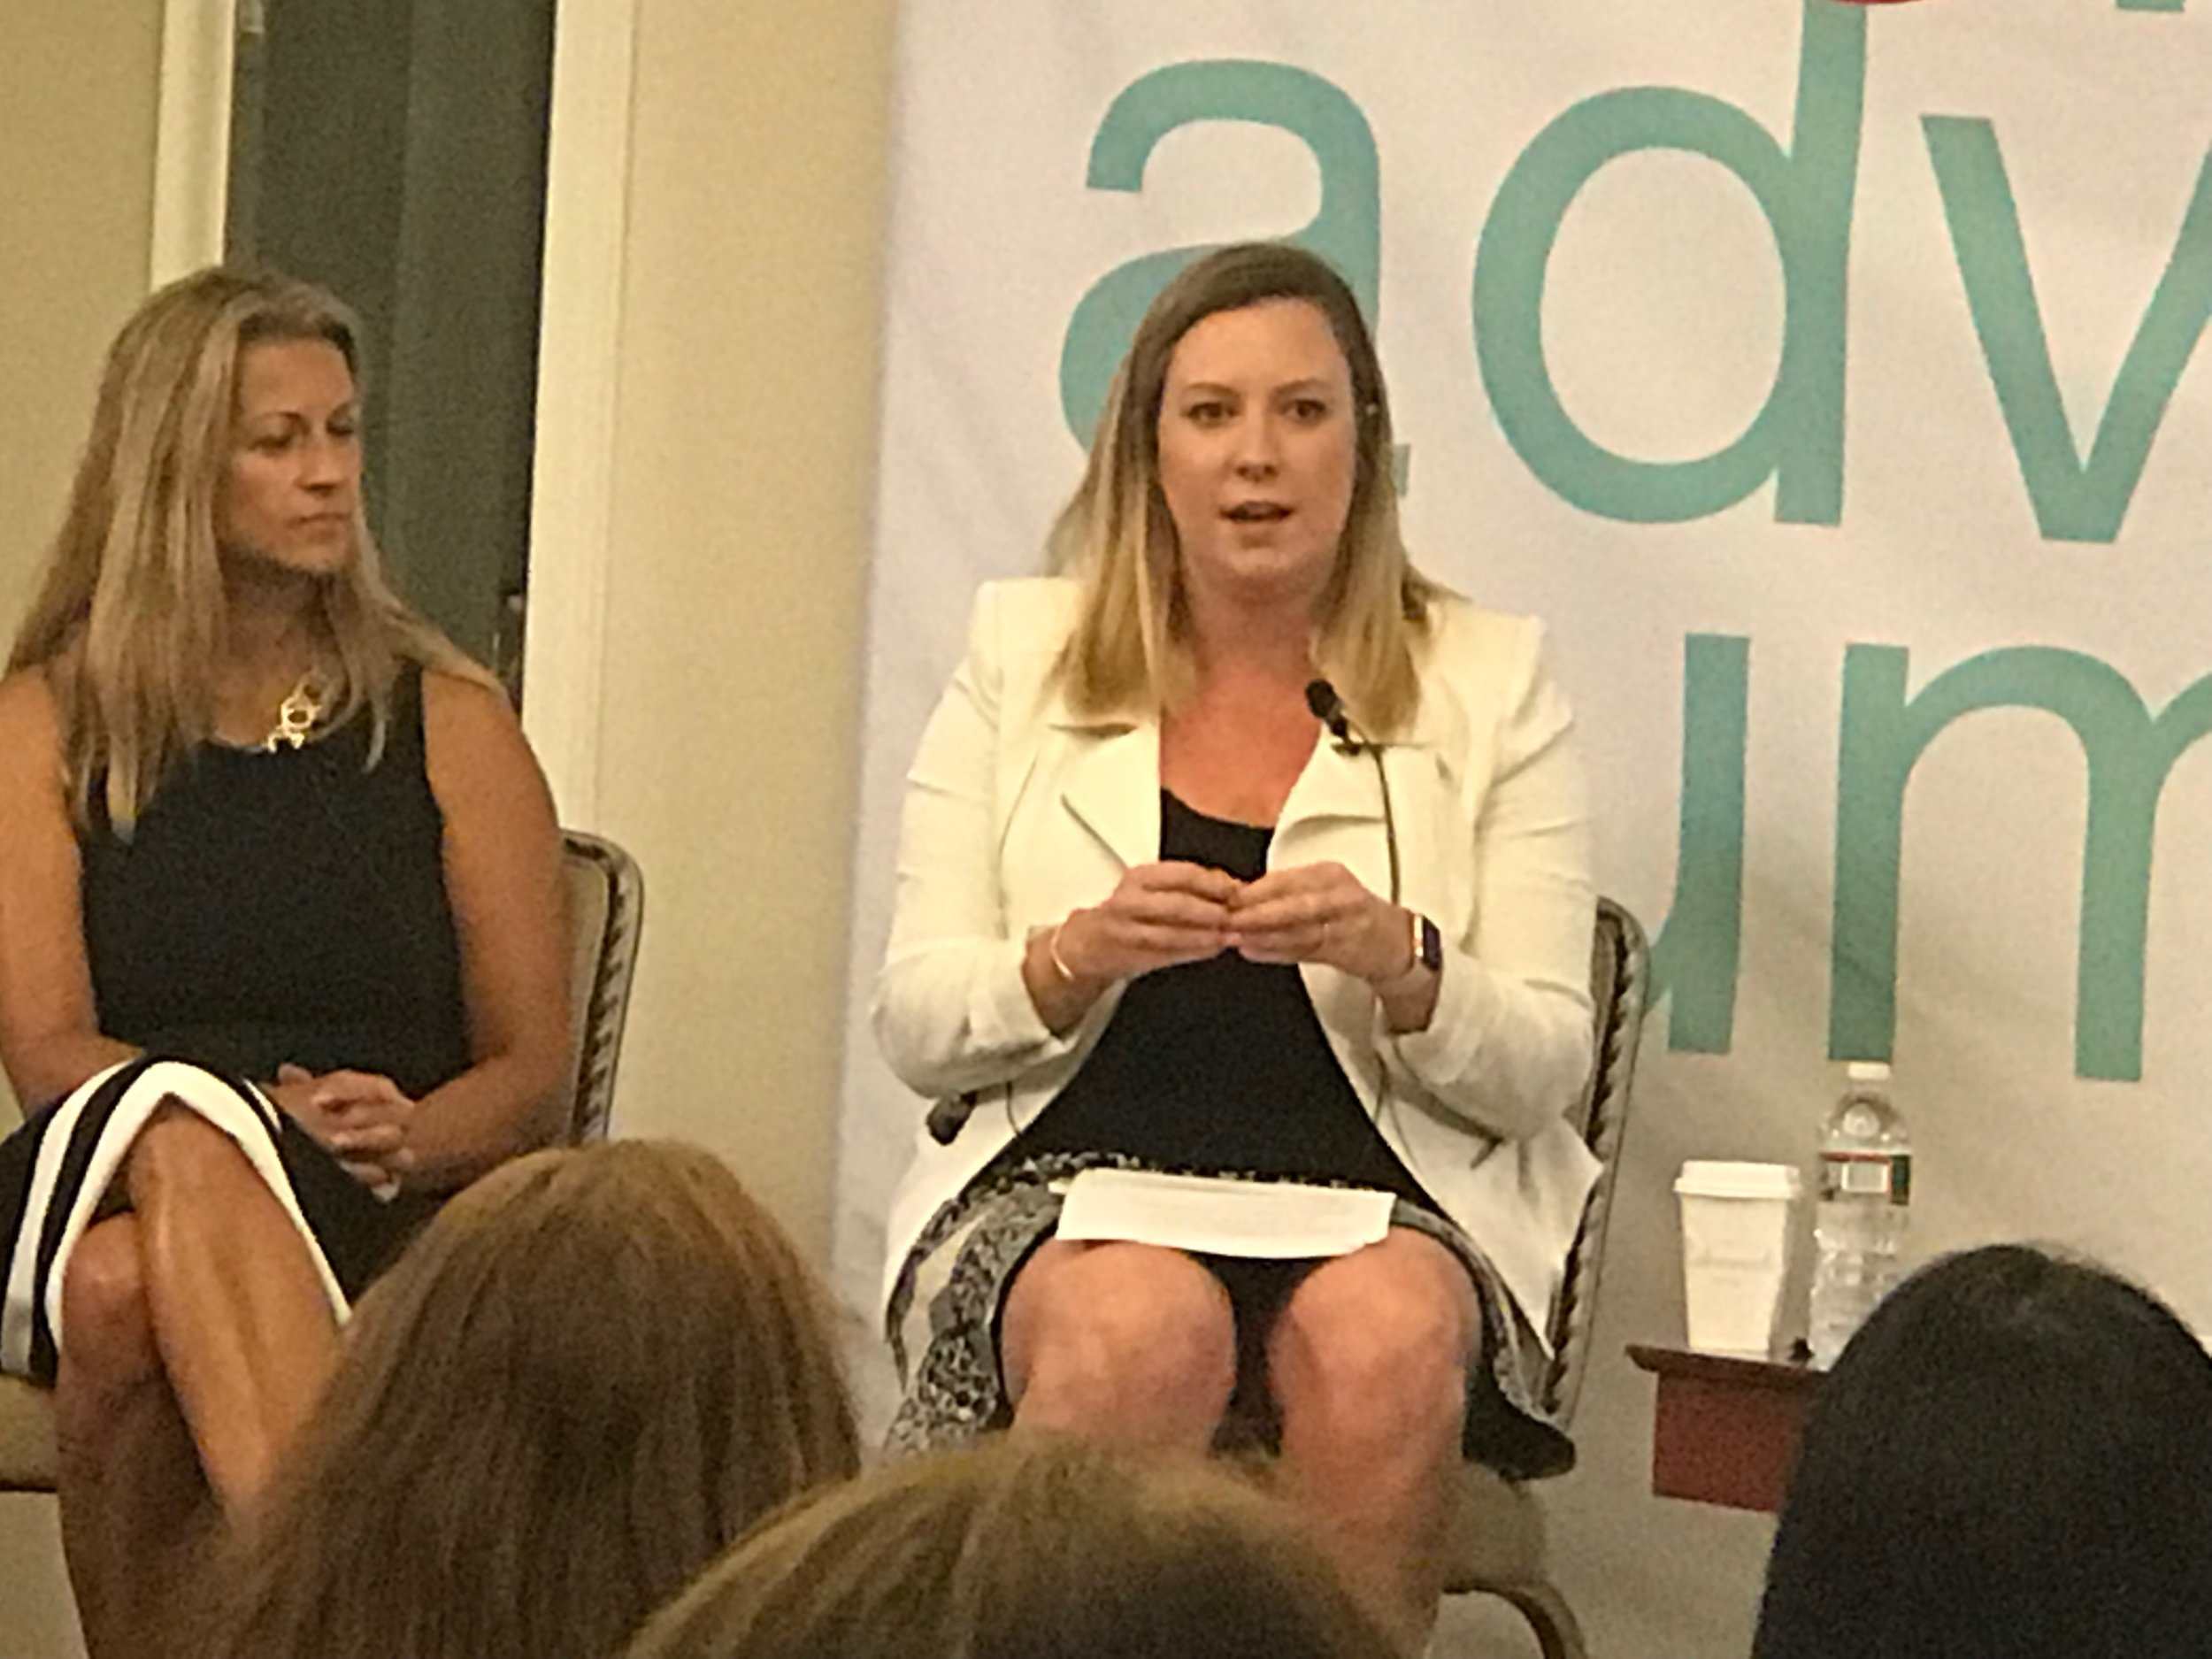 Cofounder of The W Source™ Hannah Buschbom (right) discussing business growth strategies on panel with Jennifer Baccarela (left) at the InvestmentNews Women Adviser Summit in Boston, MA.